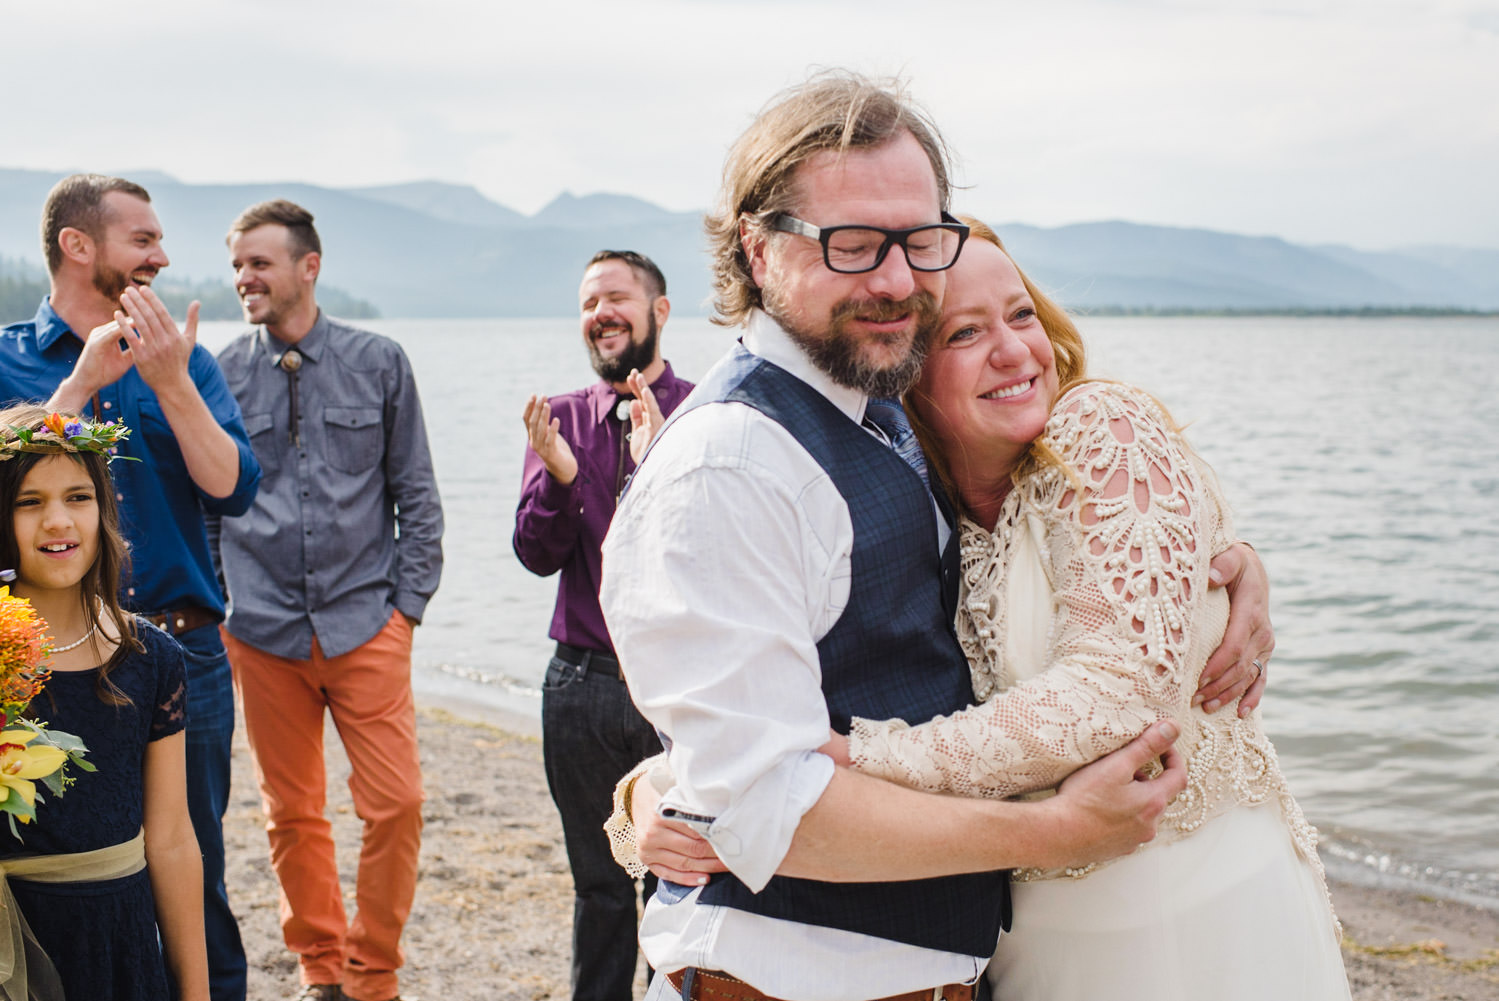 West Yellowstone Wedding bride and groom smiling photo